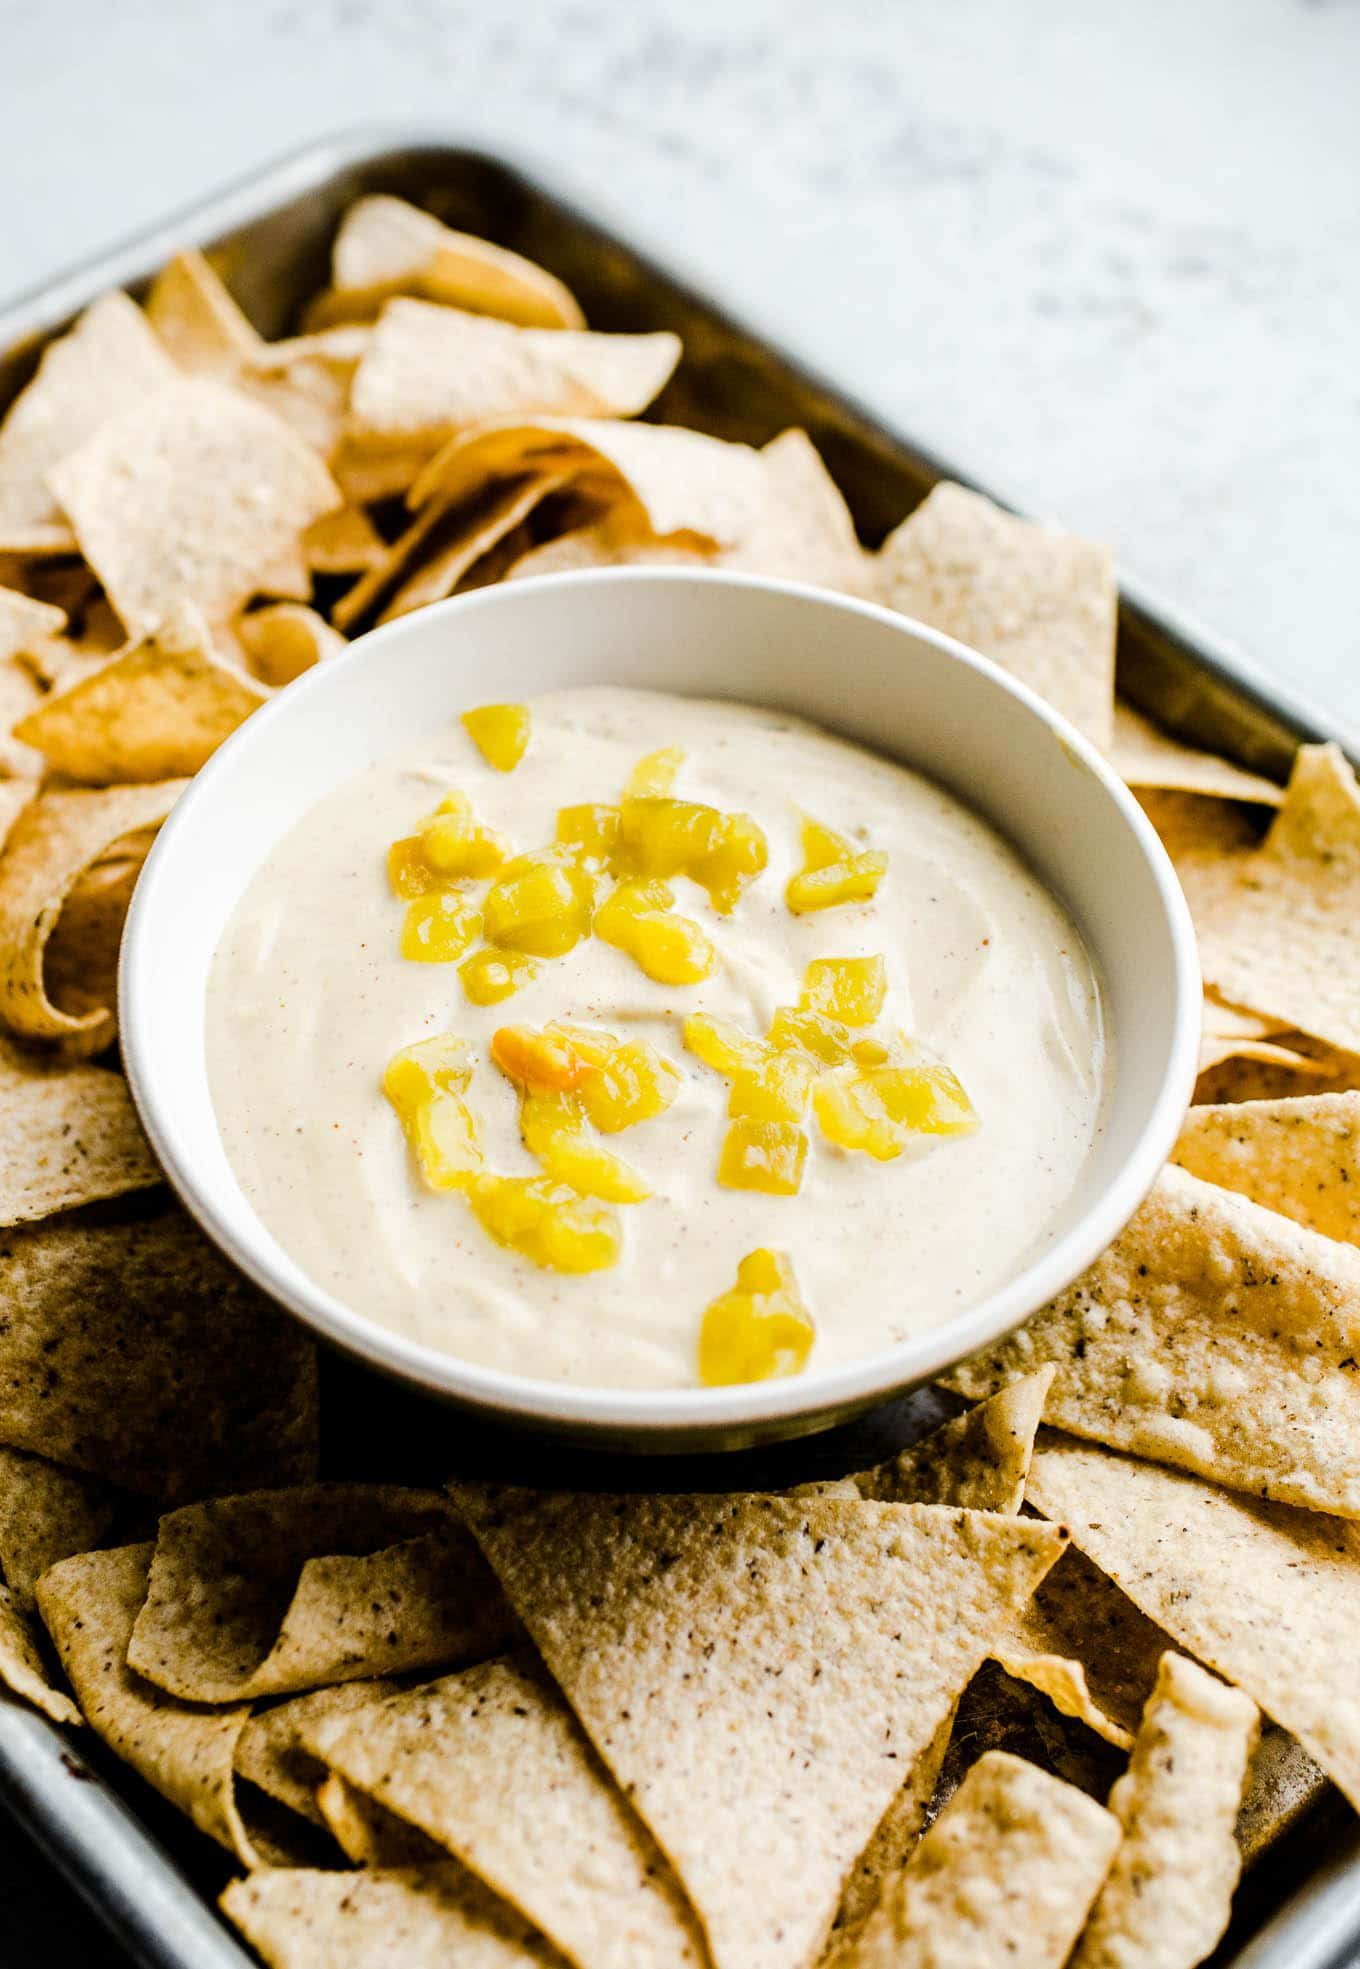 Vegan queso blanco with hatch chilis and chips